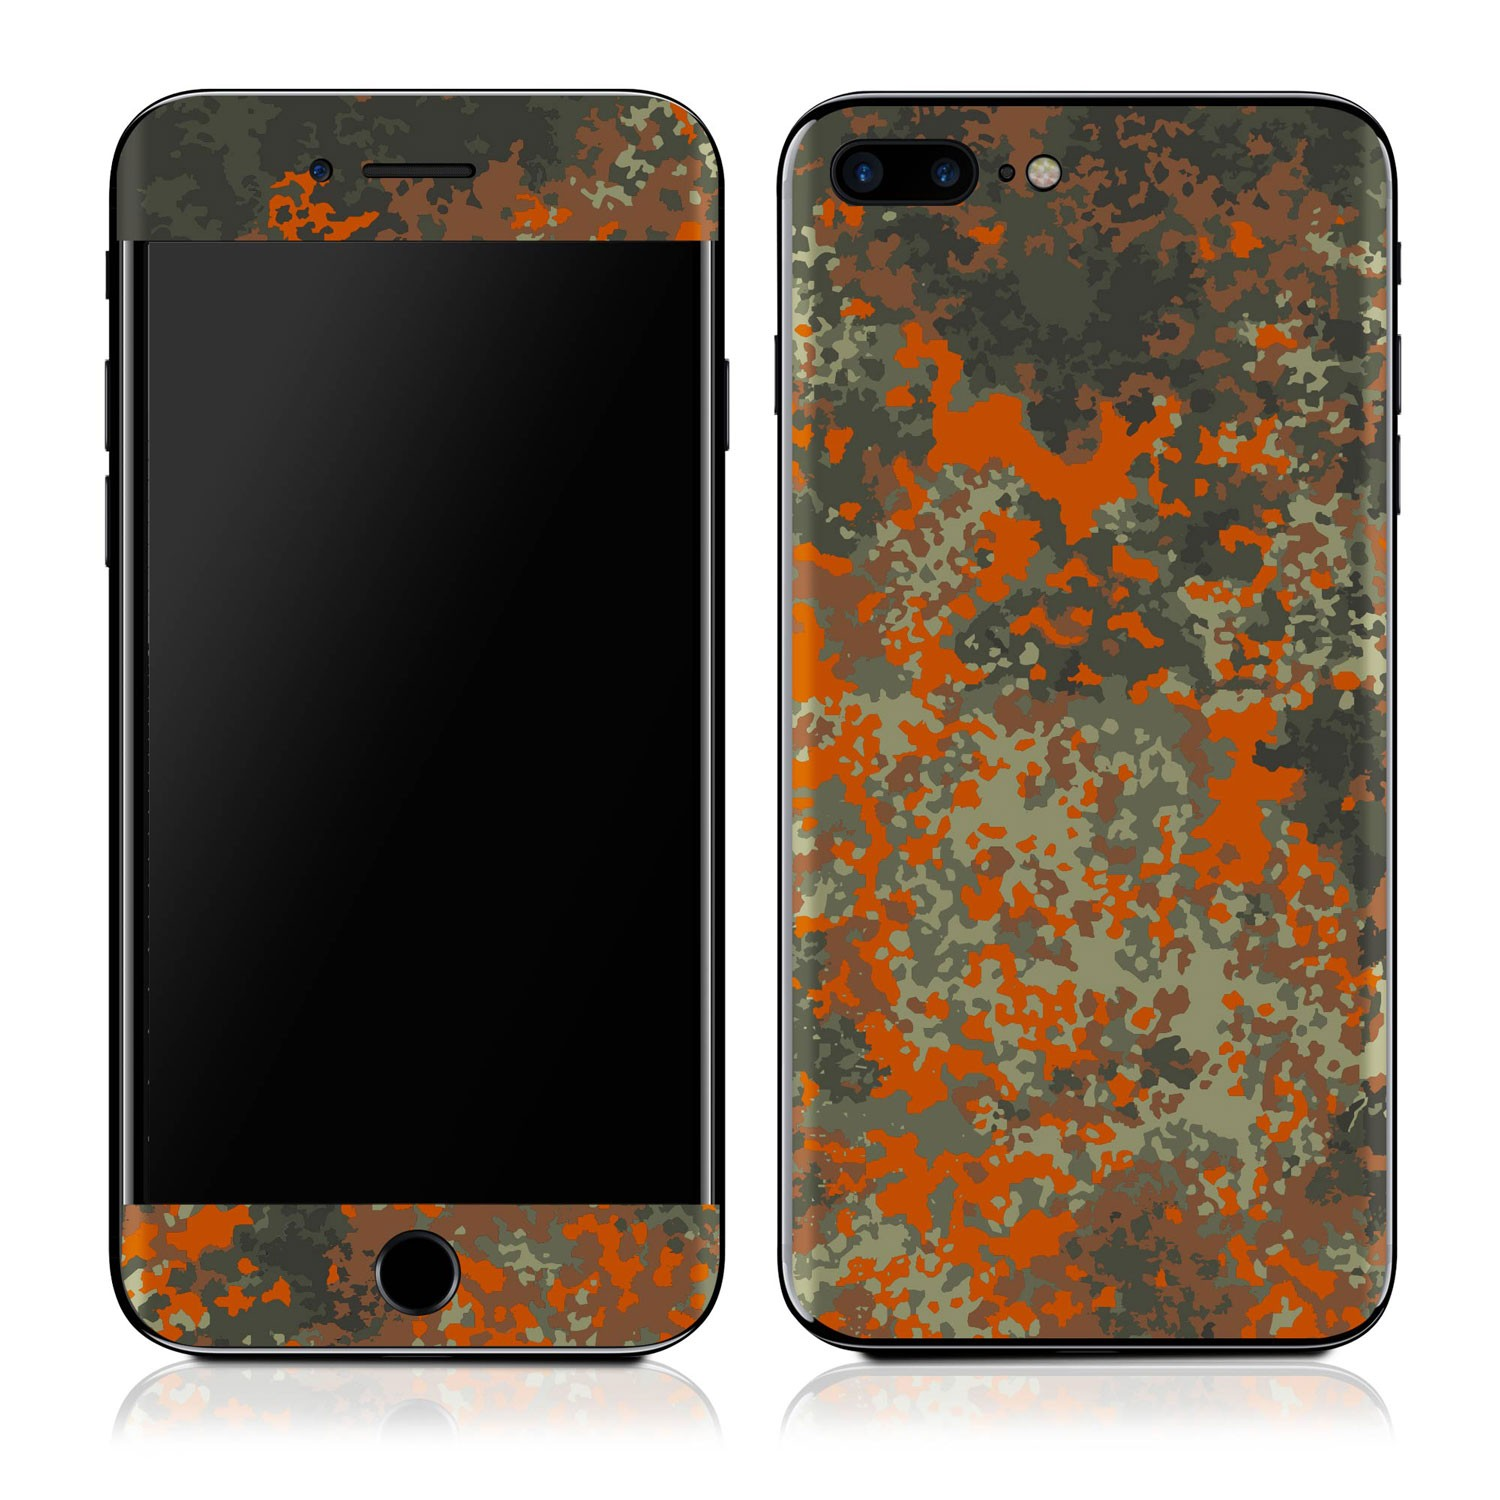 Genuine 3M Flectarn Splatter Camo iPhone 7 Plus Skin